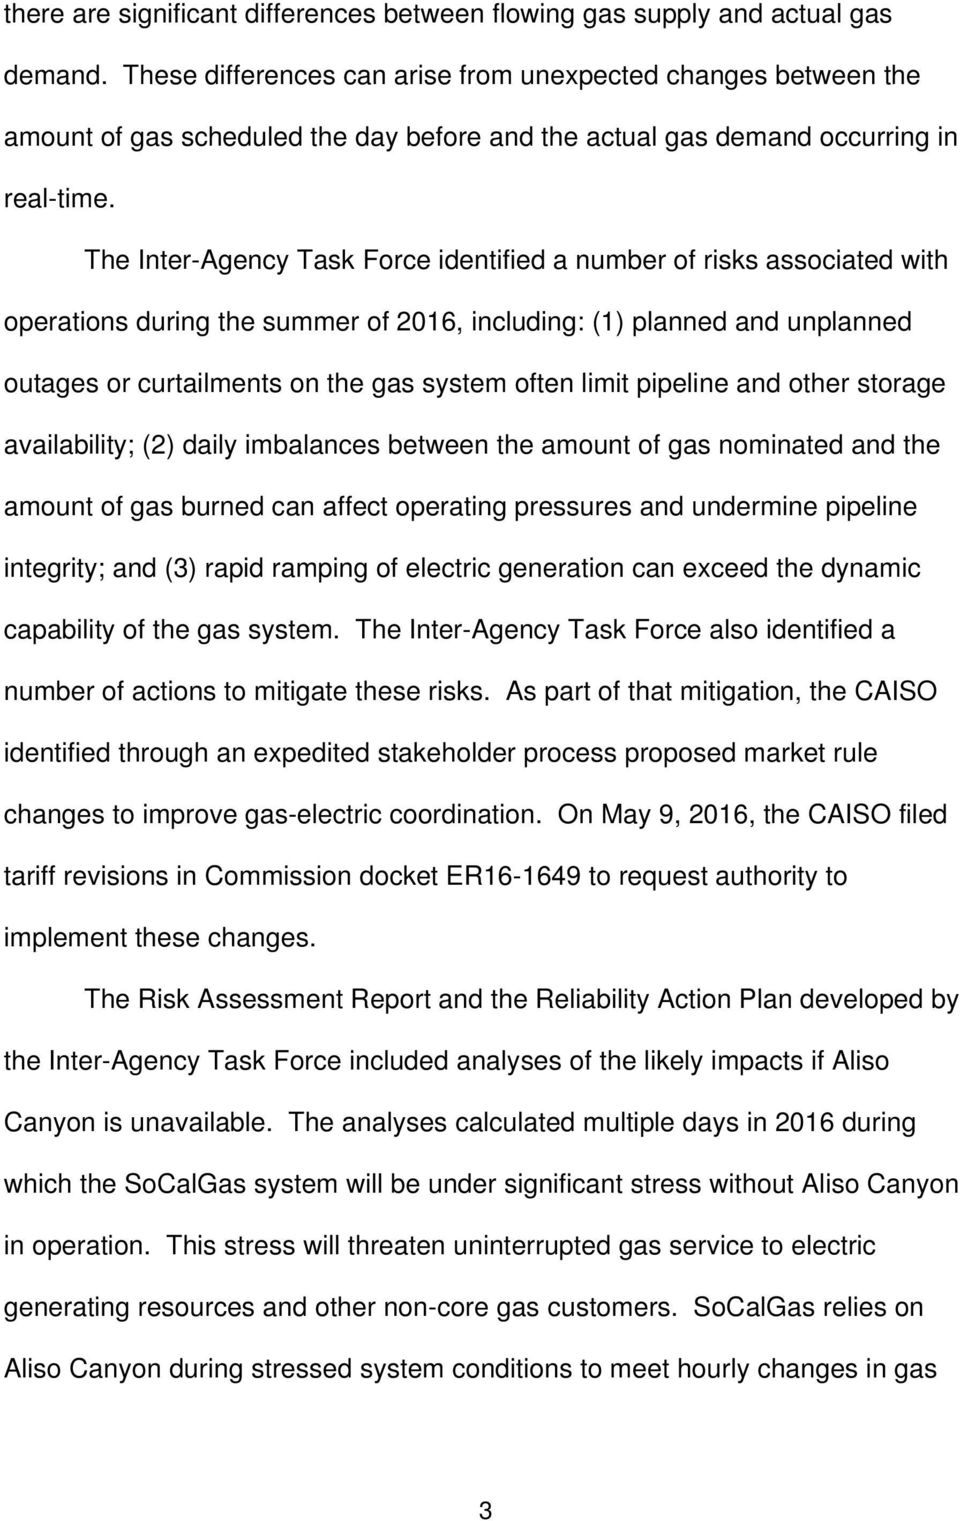 The Inter-Agency Task Force identified a number of risks associated with operations during the summer of 2016, including: (1) planned and unplanned outages or curtailments on the gas system often